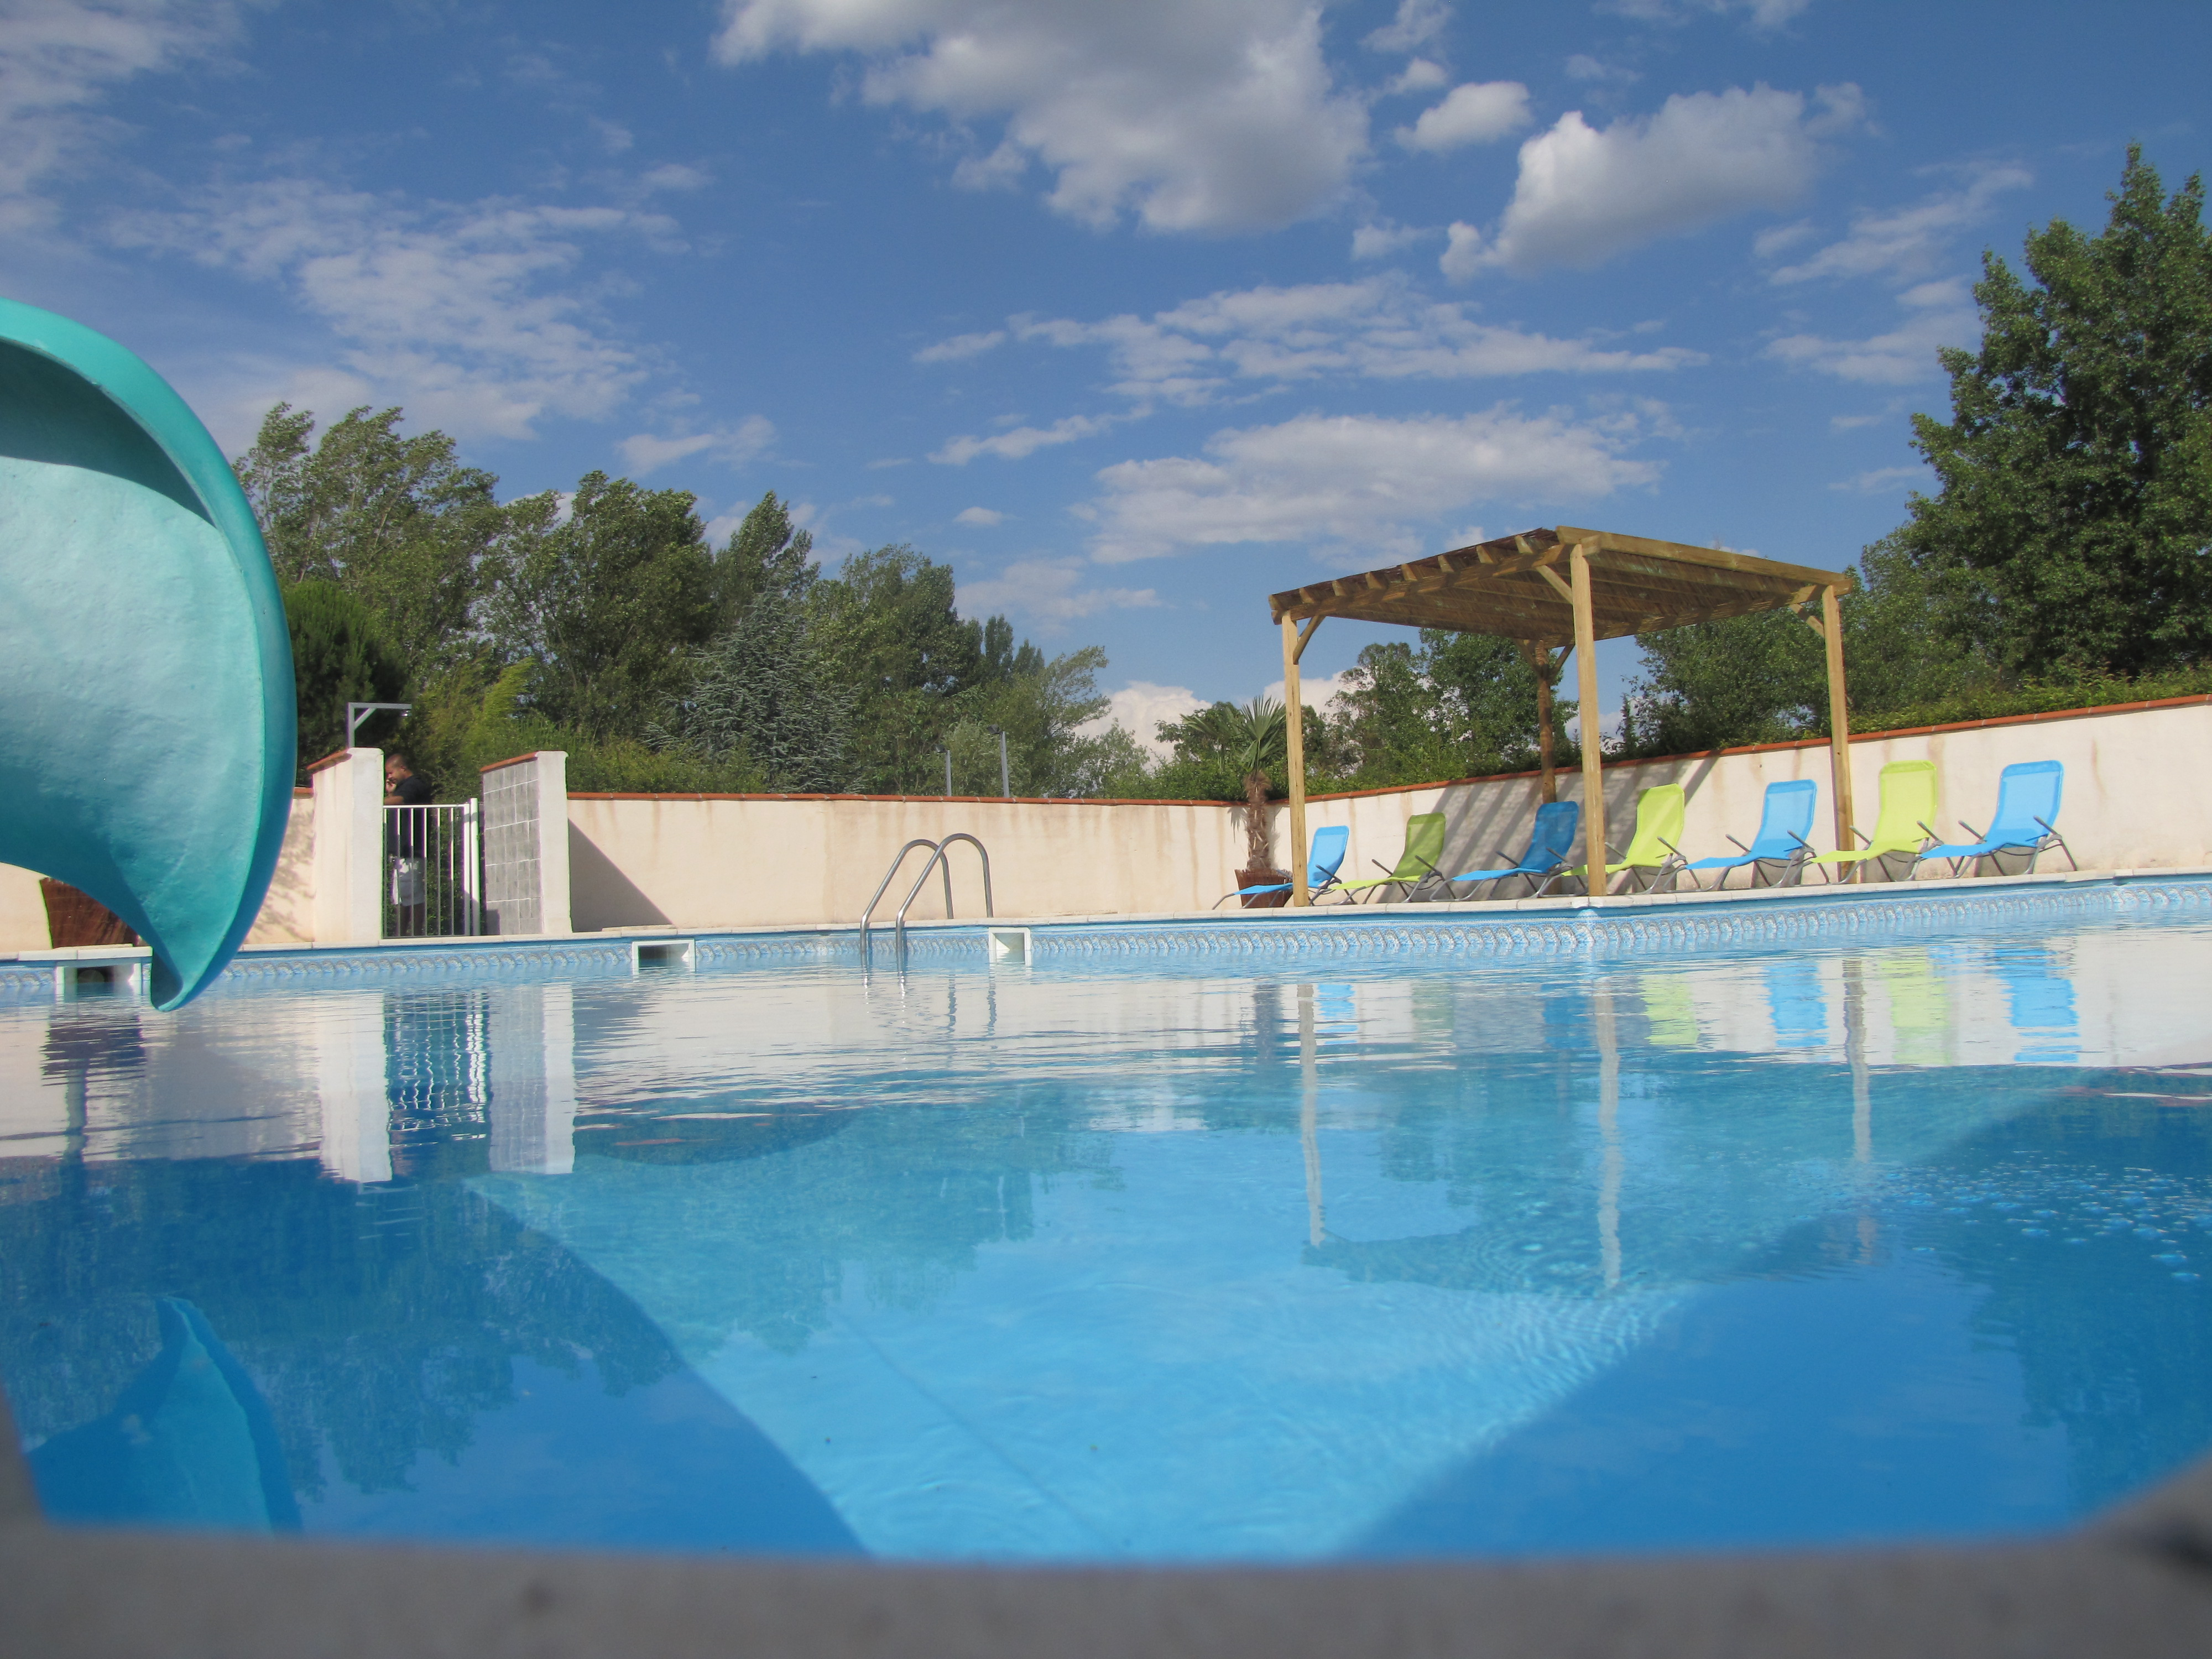 Vacance camping sud ouest vacance camping costa brava